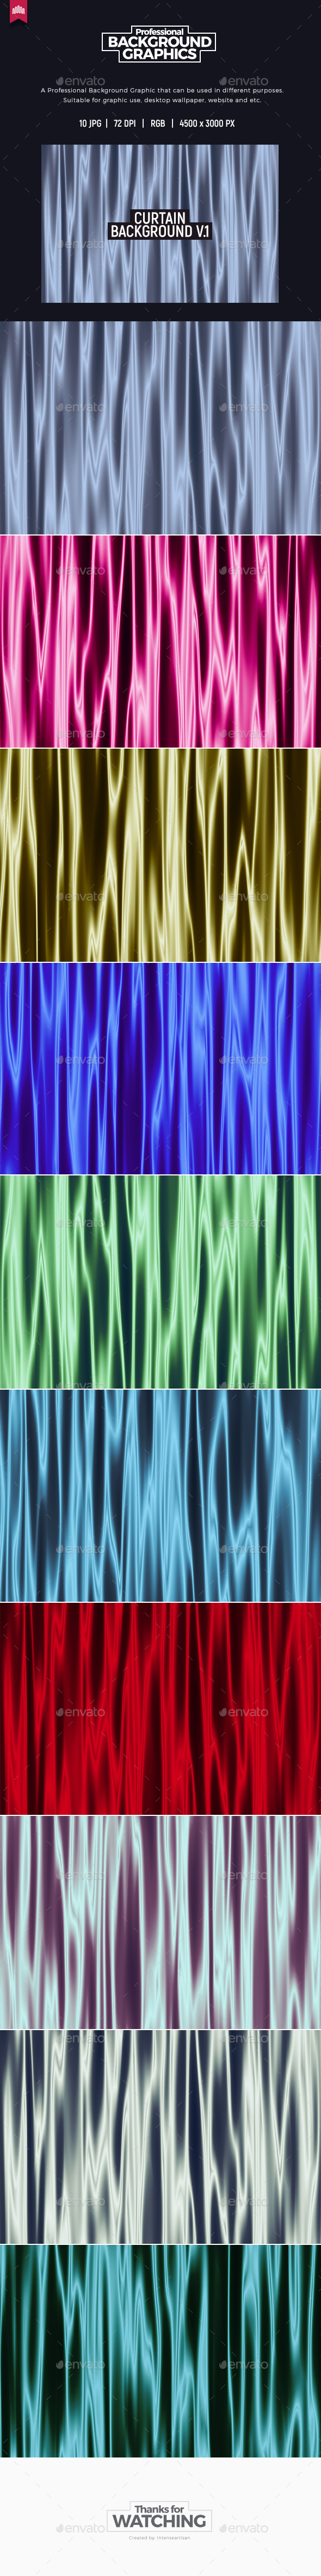 Curtain Background V.1 - Abstract Backgrounds